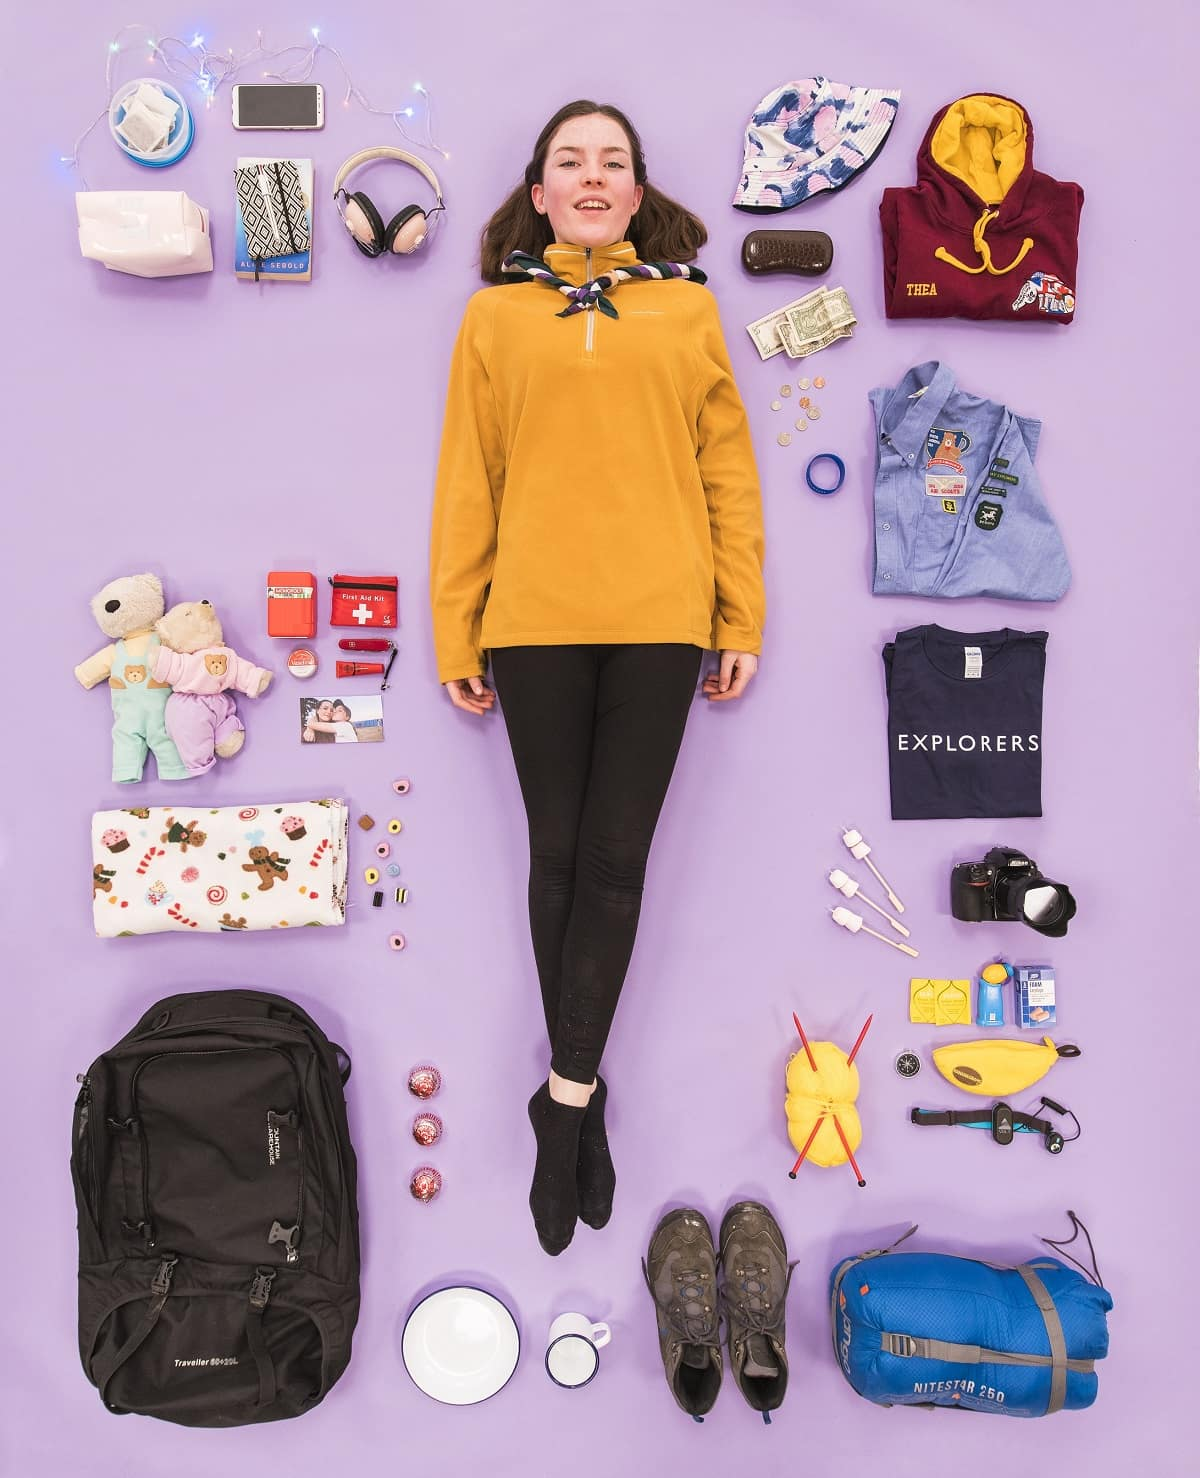 Thea, an Explorer scout, with all of her favourite things she takes on camp